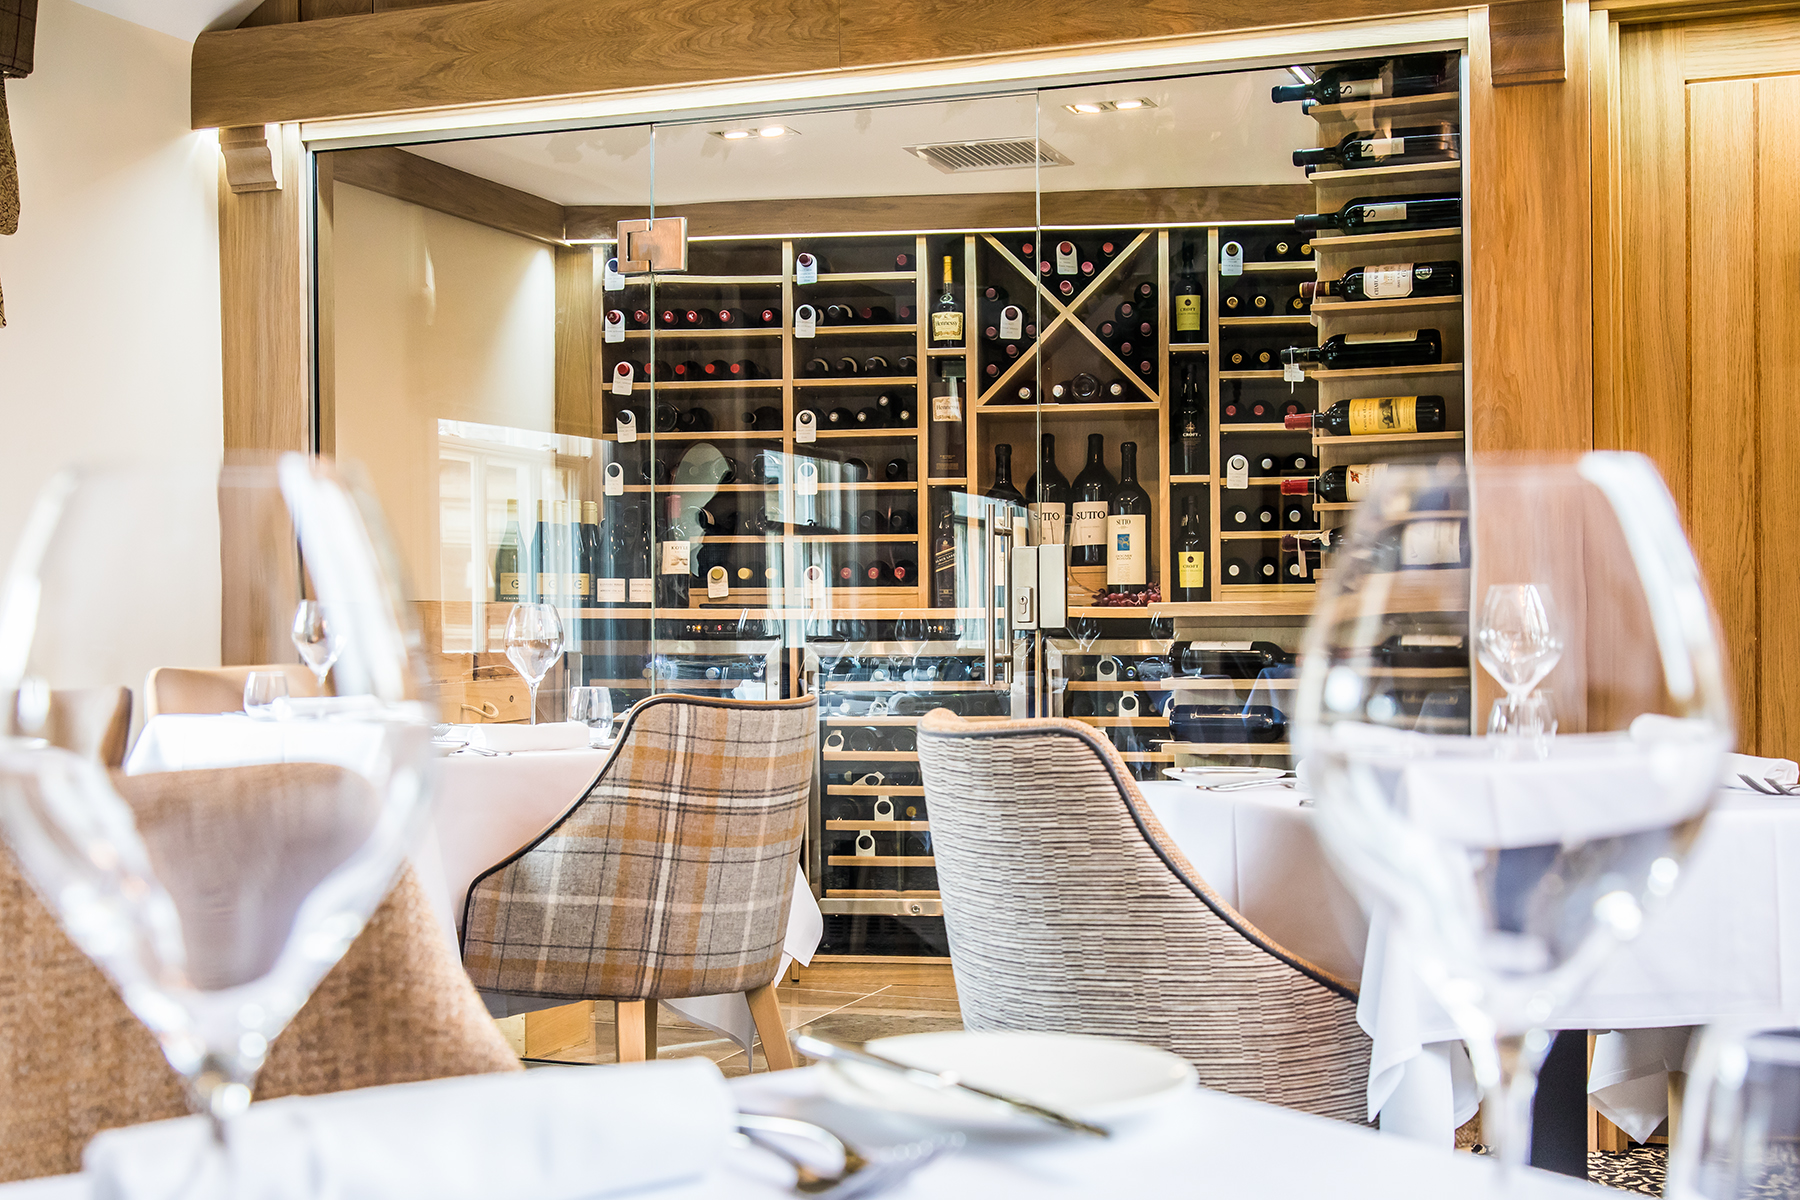 hotel, interior photography, architectural photography, interiors, property, sheffield, peak district, H Boutique, holiday, restaurant, fine dining